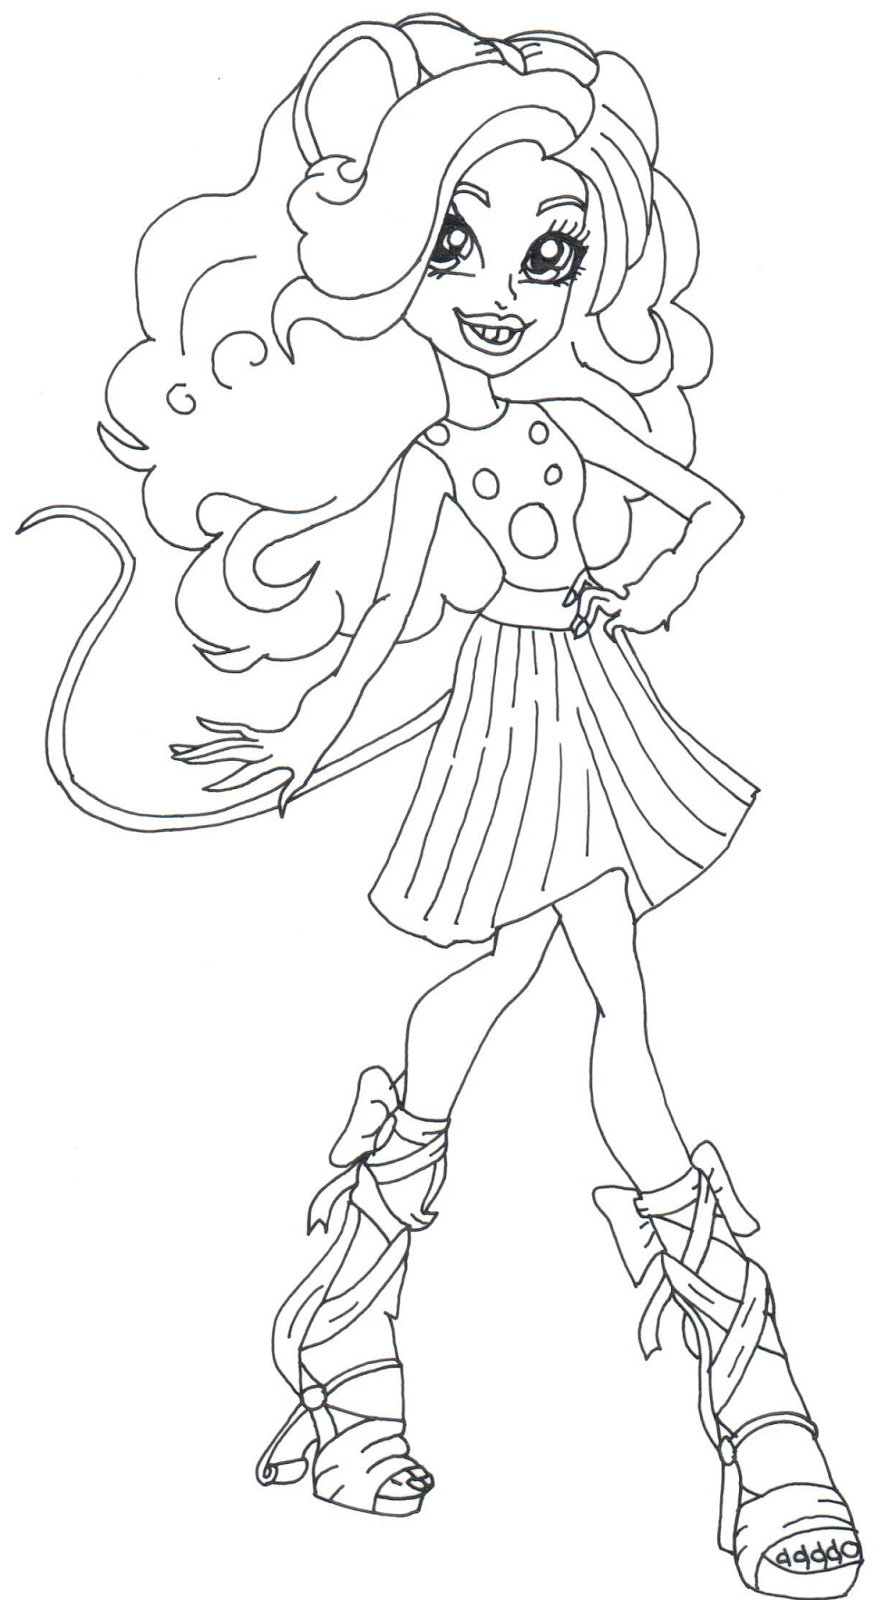 free printable monster high coloring pages mouscedes king monster - York Coloring Pages Printable